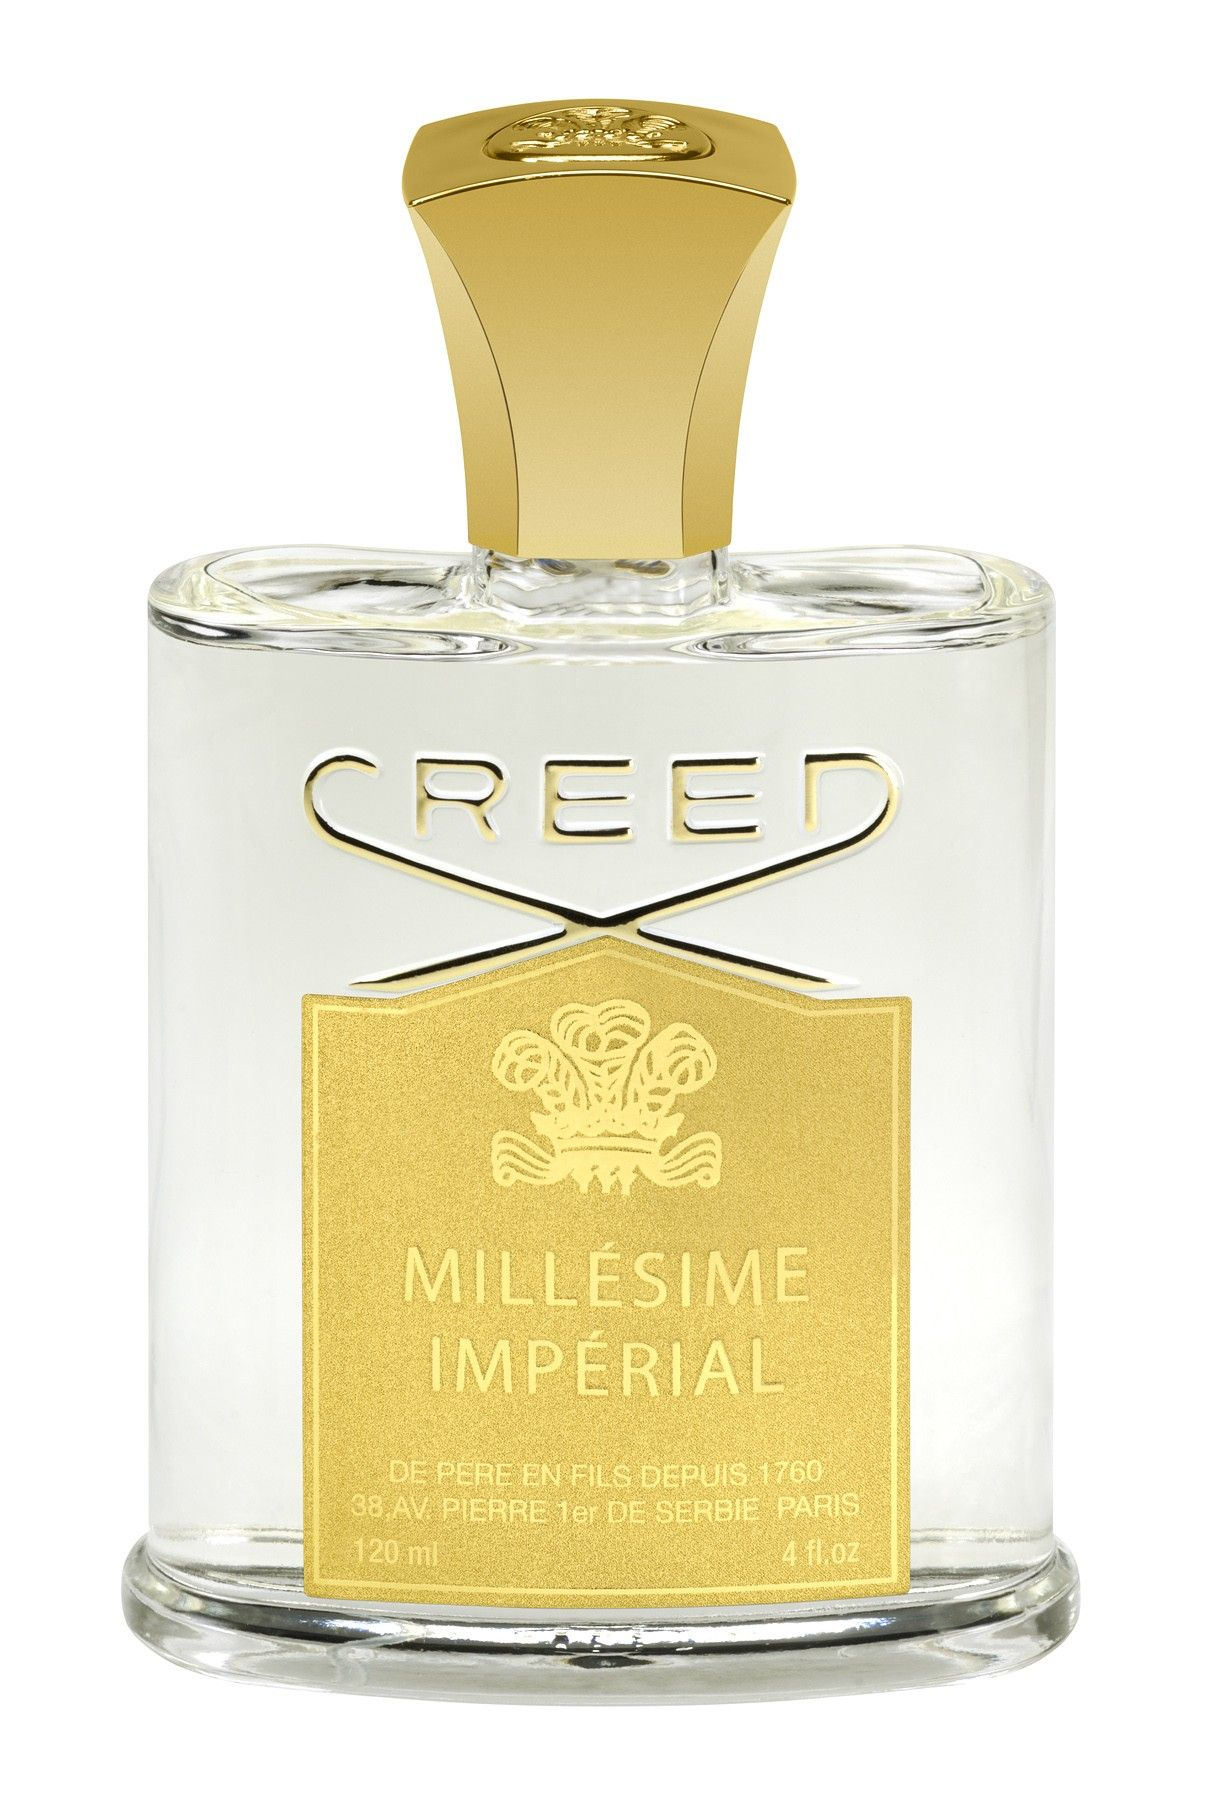 Purchase Authentic Creed Imperial Millesime On Creedboutiquecom